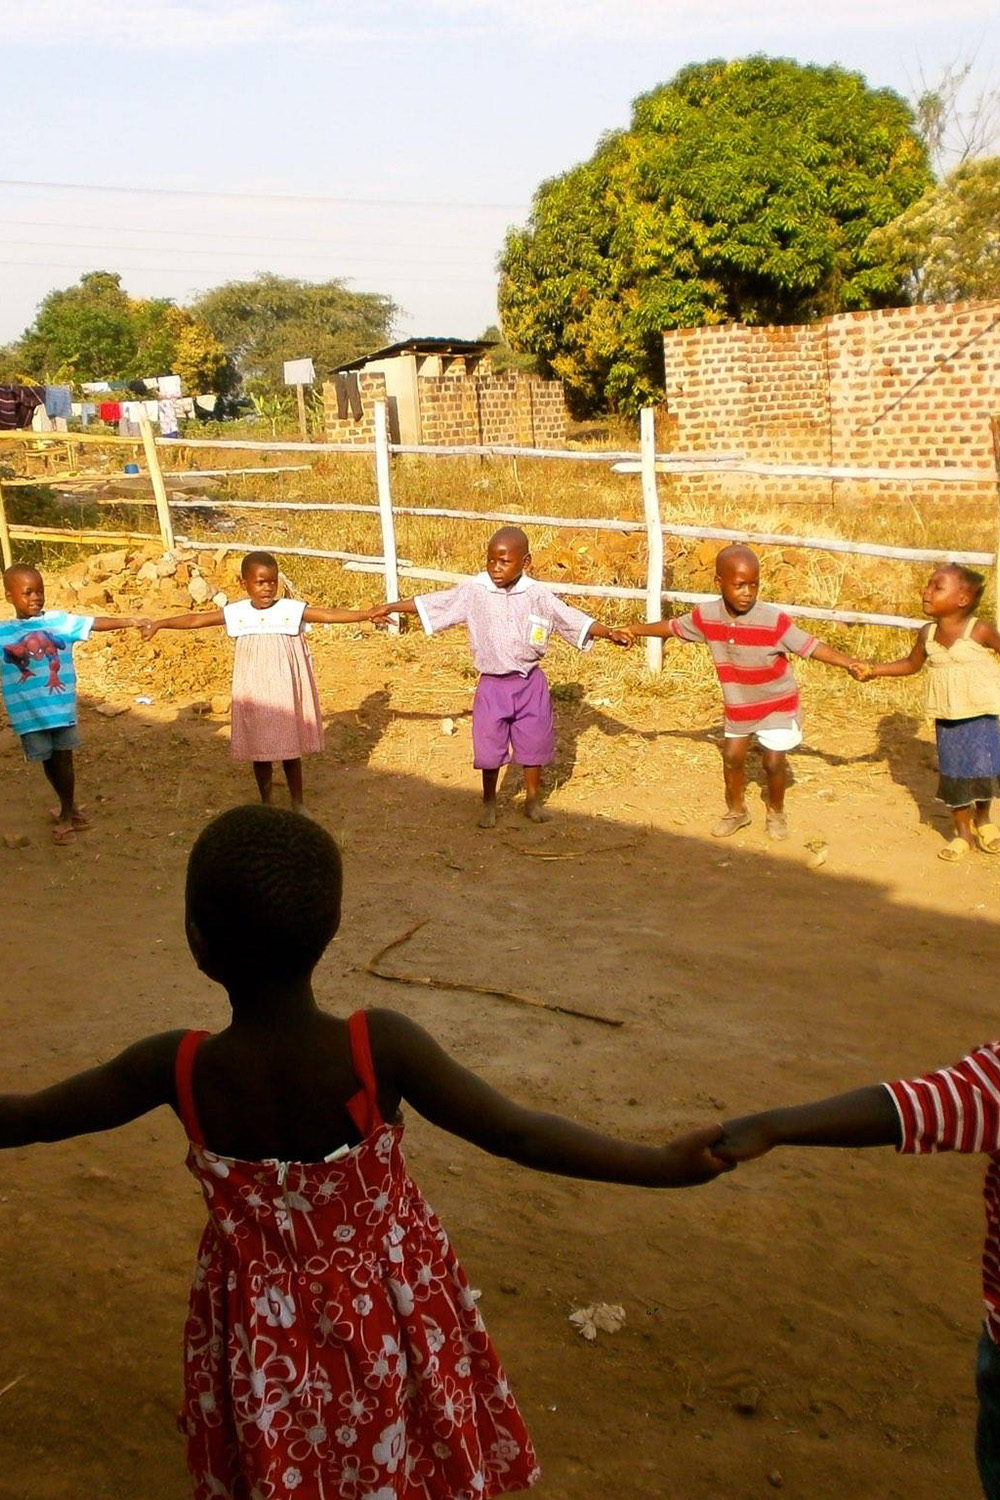 Children playing - Sponsor a child's education in Africa - Chances for Children